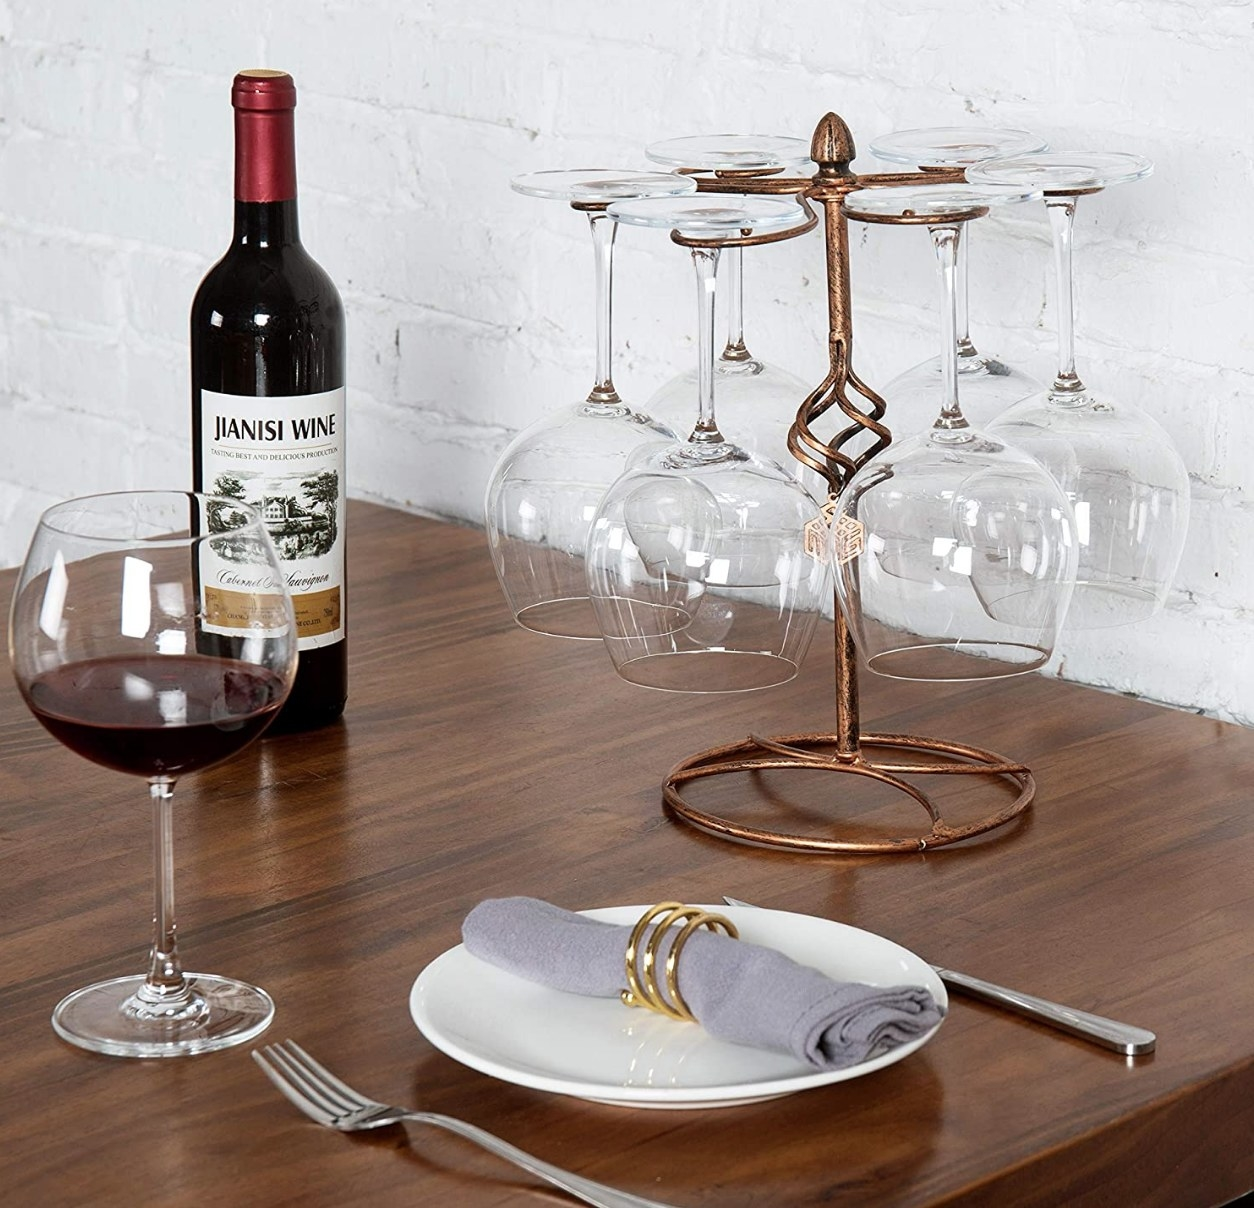 A bronze, tabletop wine glass rack that holds 6 glasses